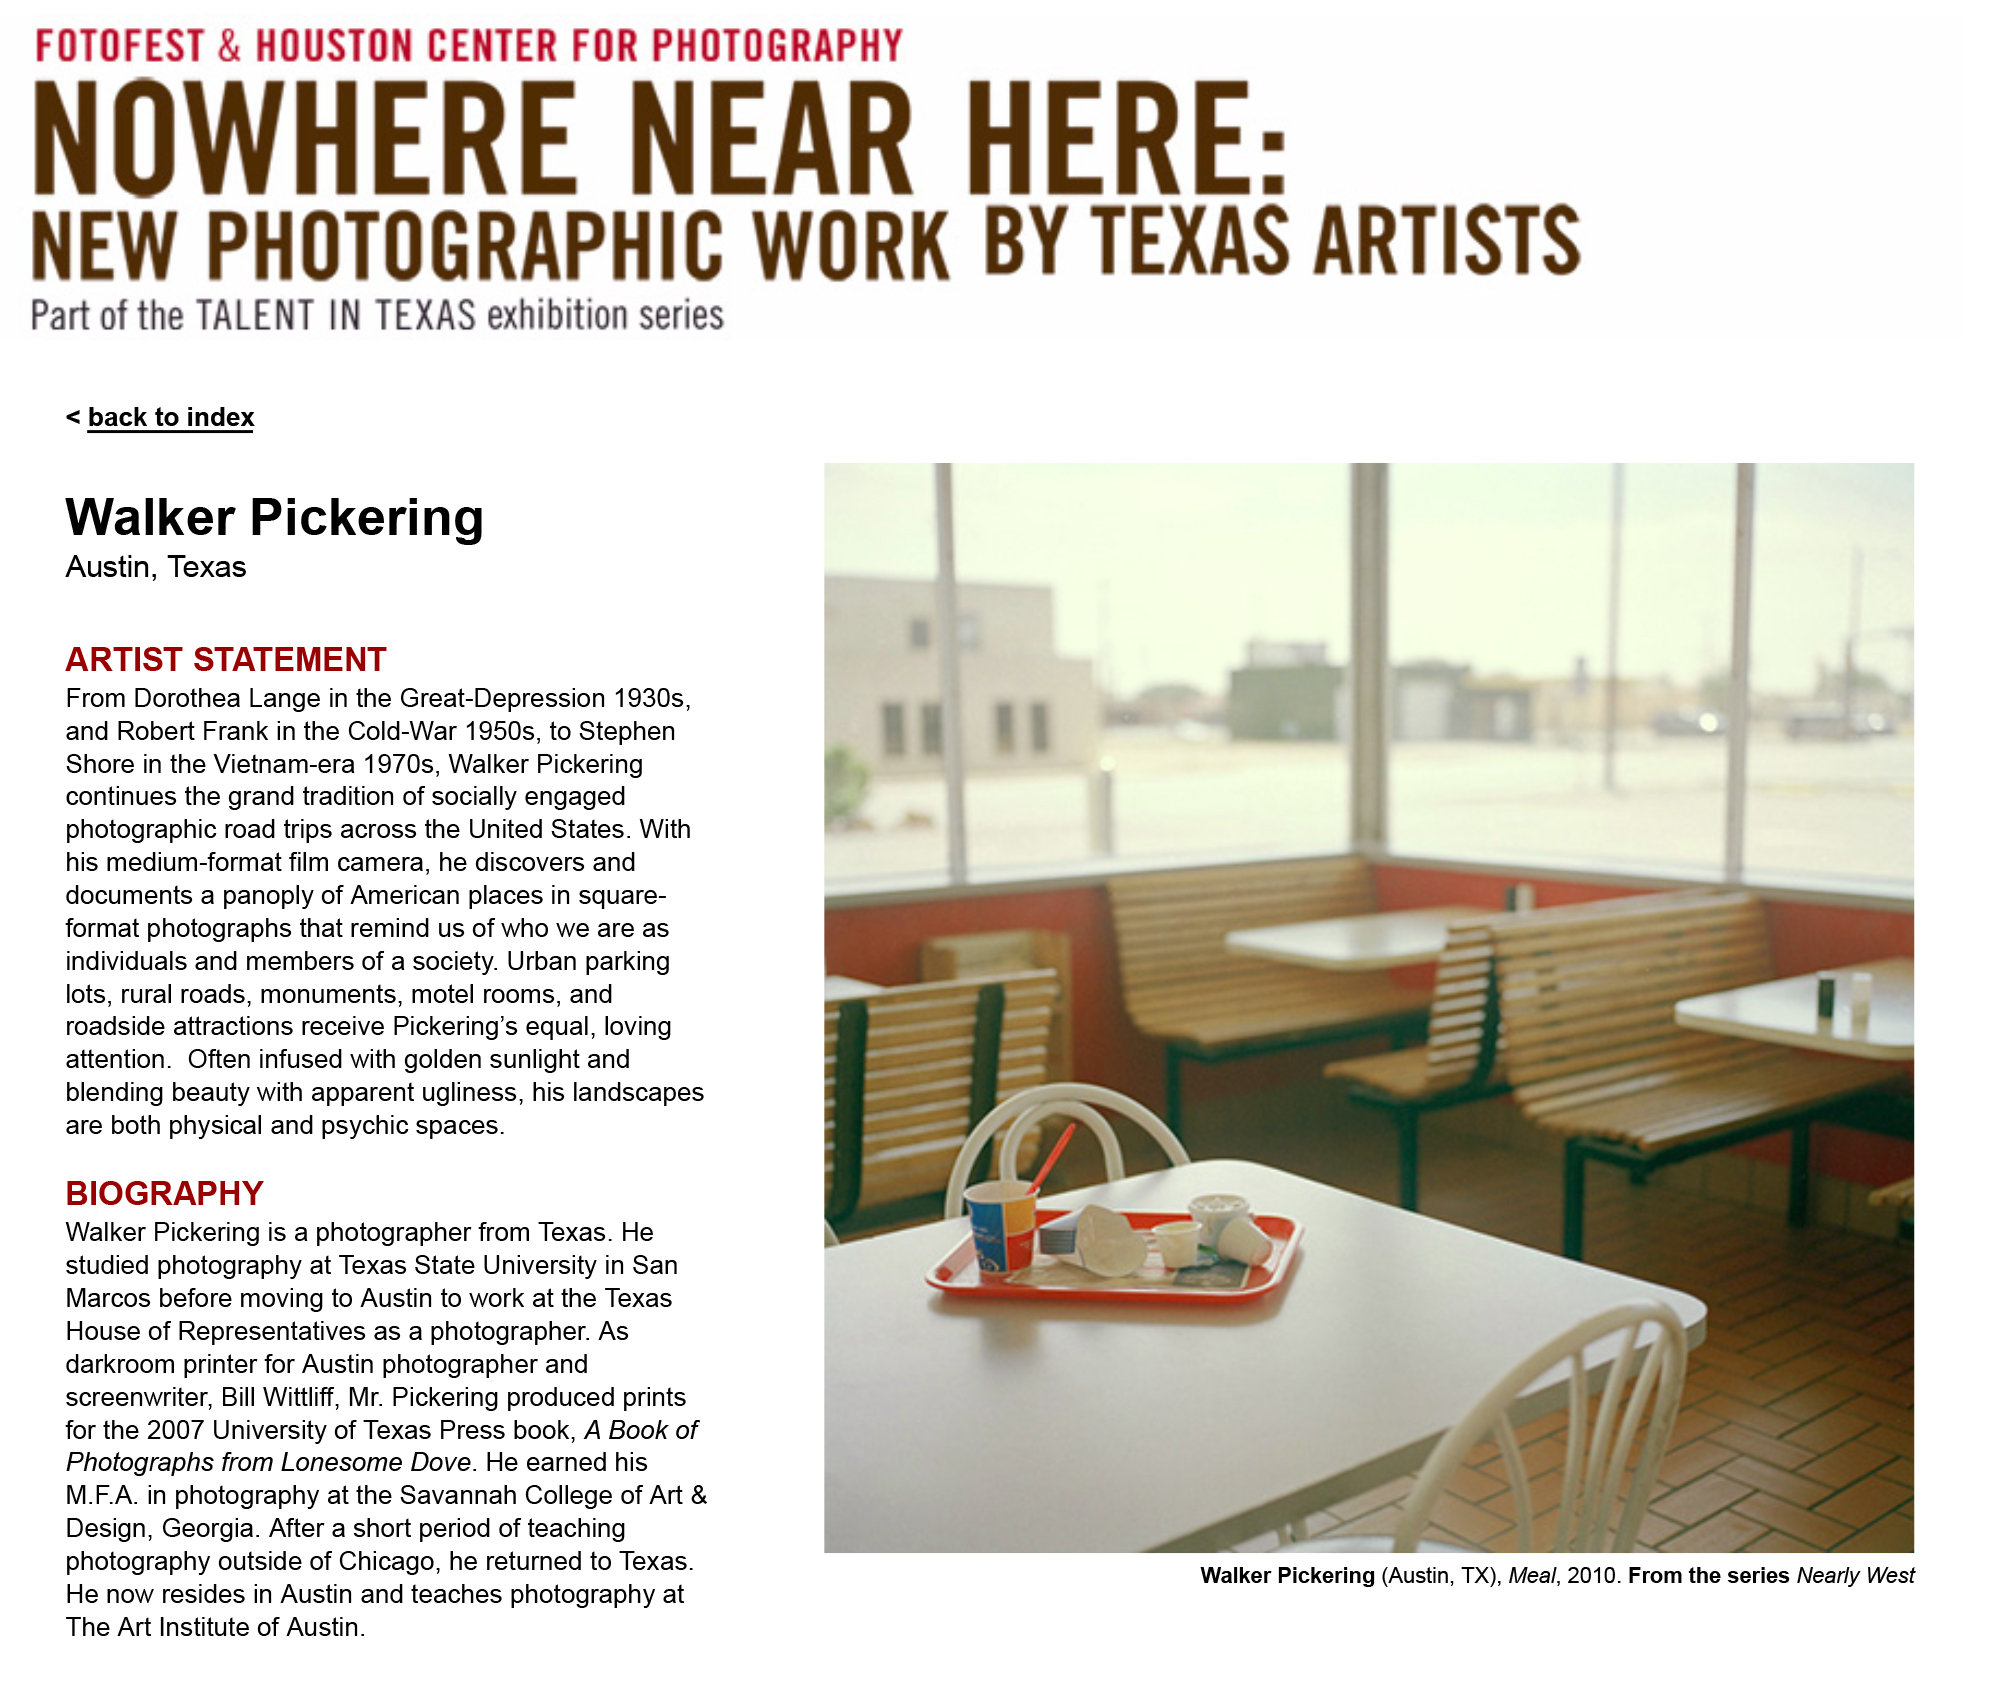 FotoFest Exhibitions 2011 - Nowhere Near Here | Talent in Texas